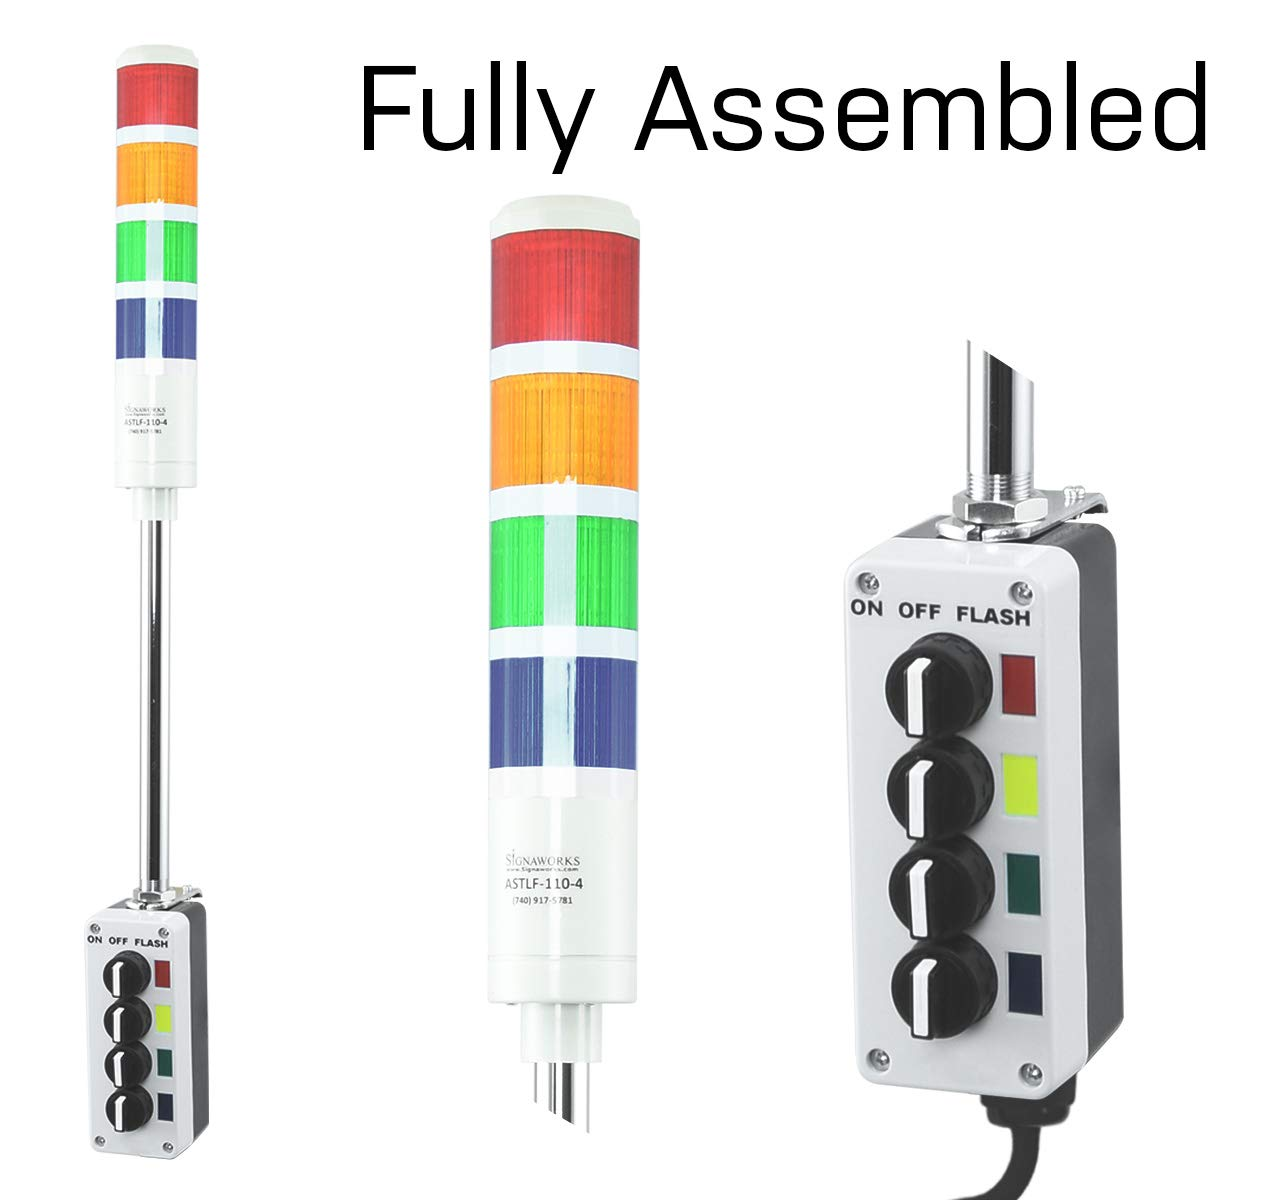 24VDC R//Y//G//B//W with Flashing Capabilities LED Andon Light American LED-gible LD-5225-101 LED Tower Light LED stacklight